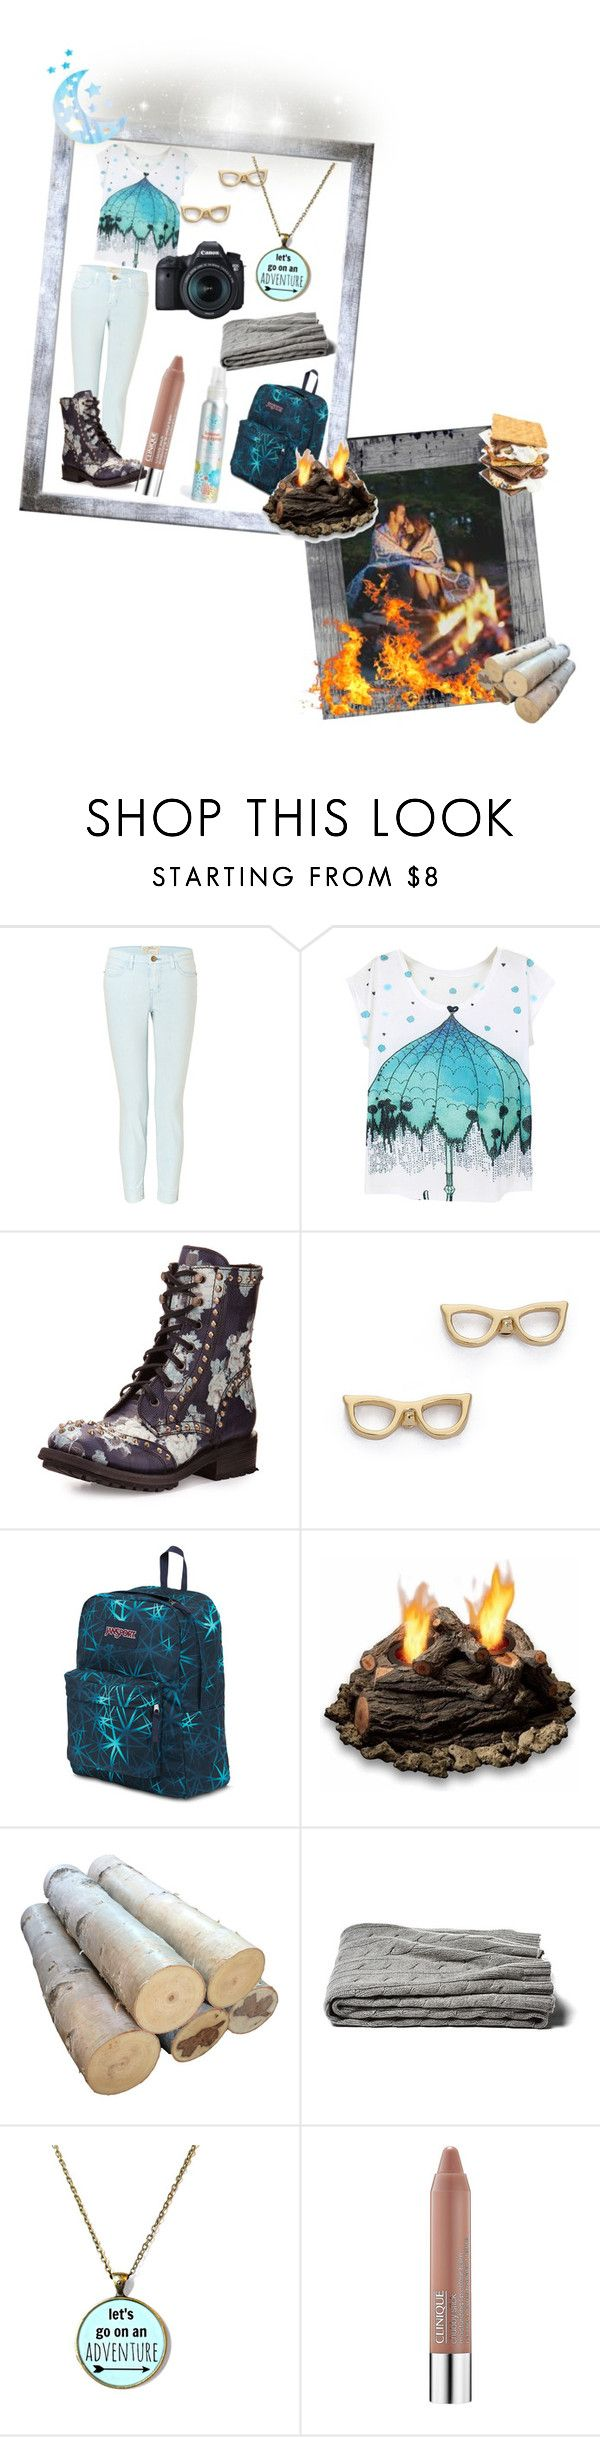 """""""30 Days of Love; Day 10: Campfire"""" by tearasakuramori ❤ liked on Polyvore featuring Current/Elliott, Ash, Kate Spade, JanSport, Real Flame, Clinique, The Honest Company and Eos"""